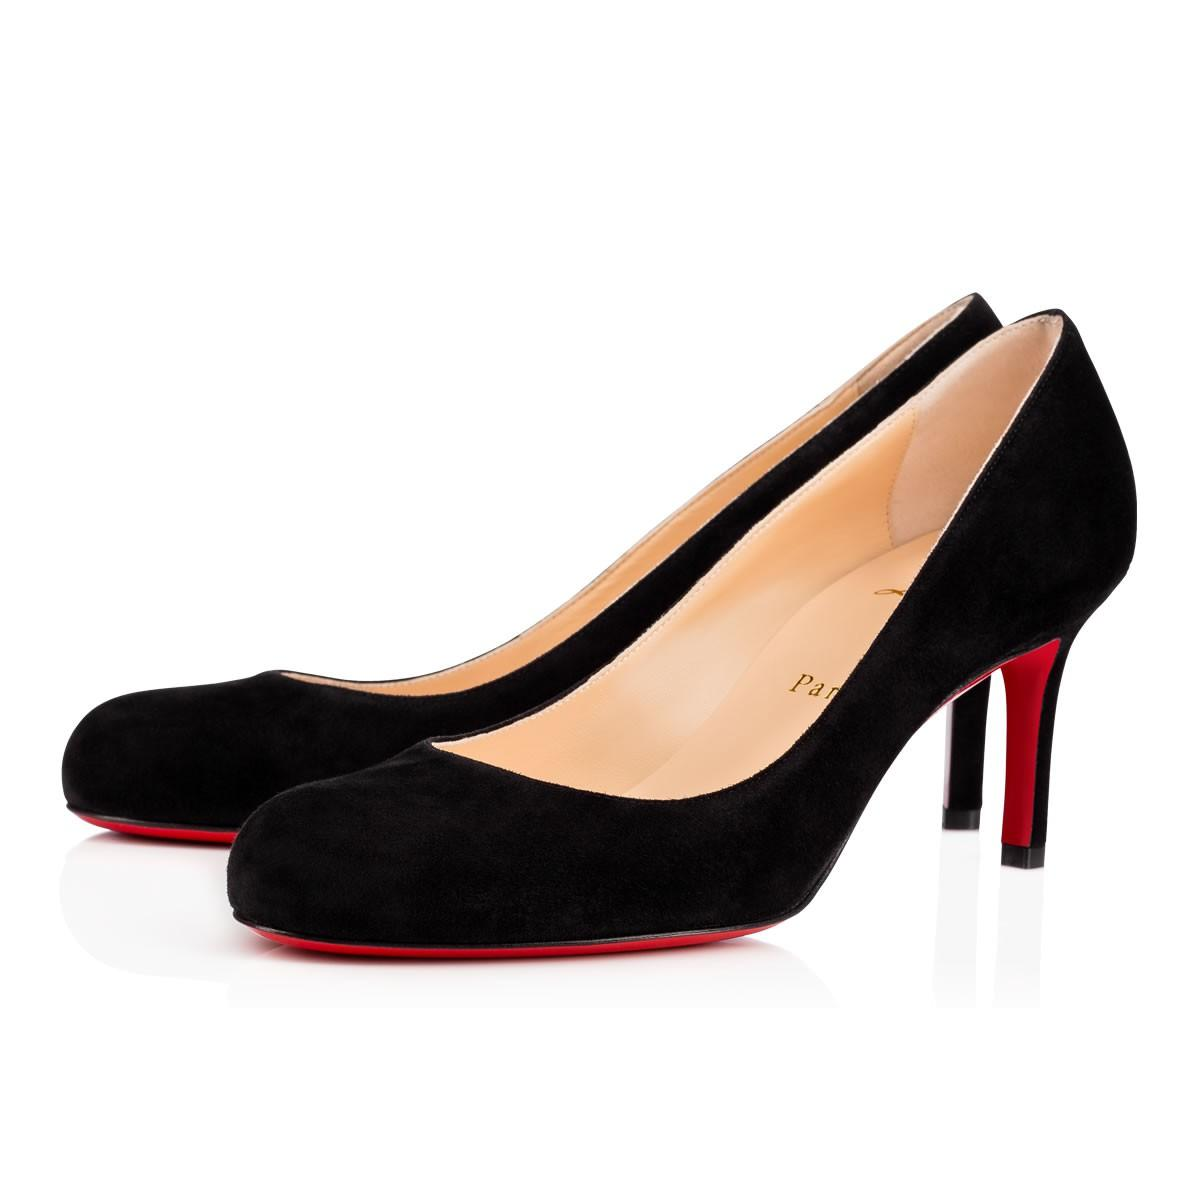 8ab24696f4e3 Christian Louboutin Black 38.5 Suede Simple 70mm Pumps Size Size Size US  8.5 Regular (M Skip to content